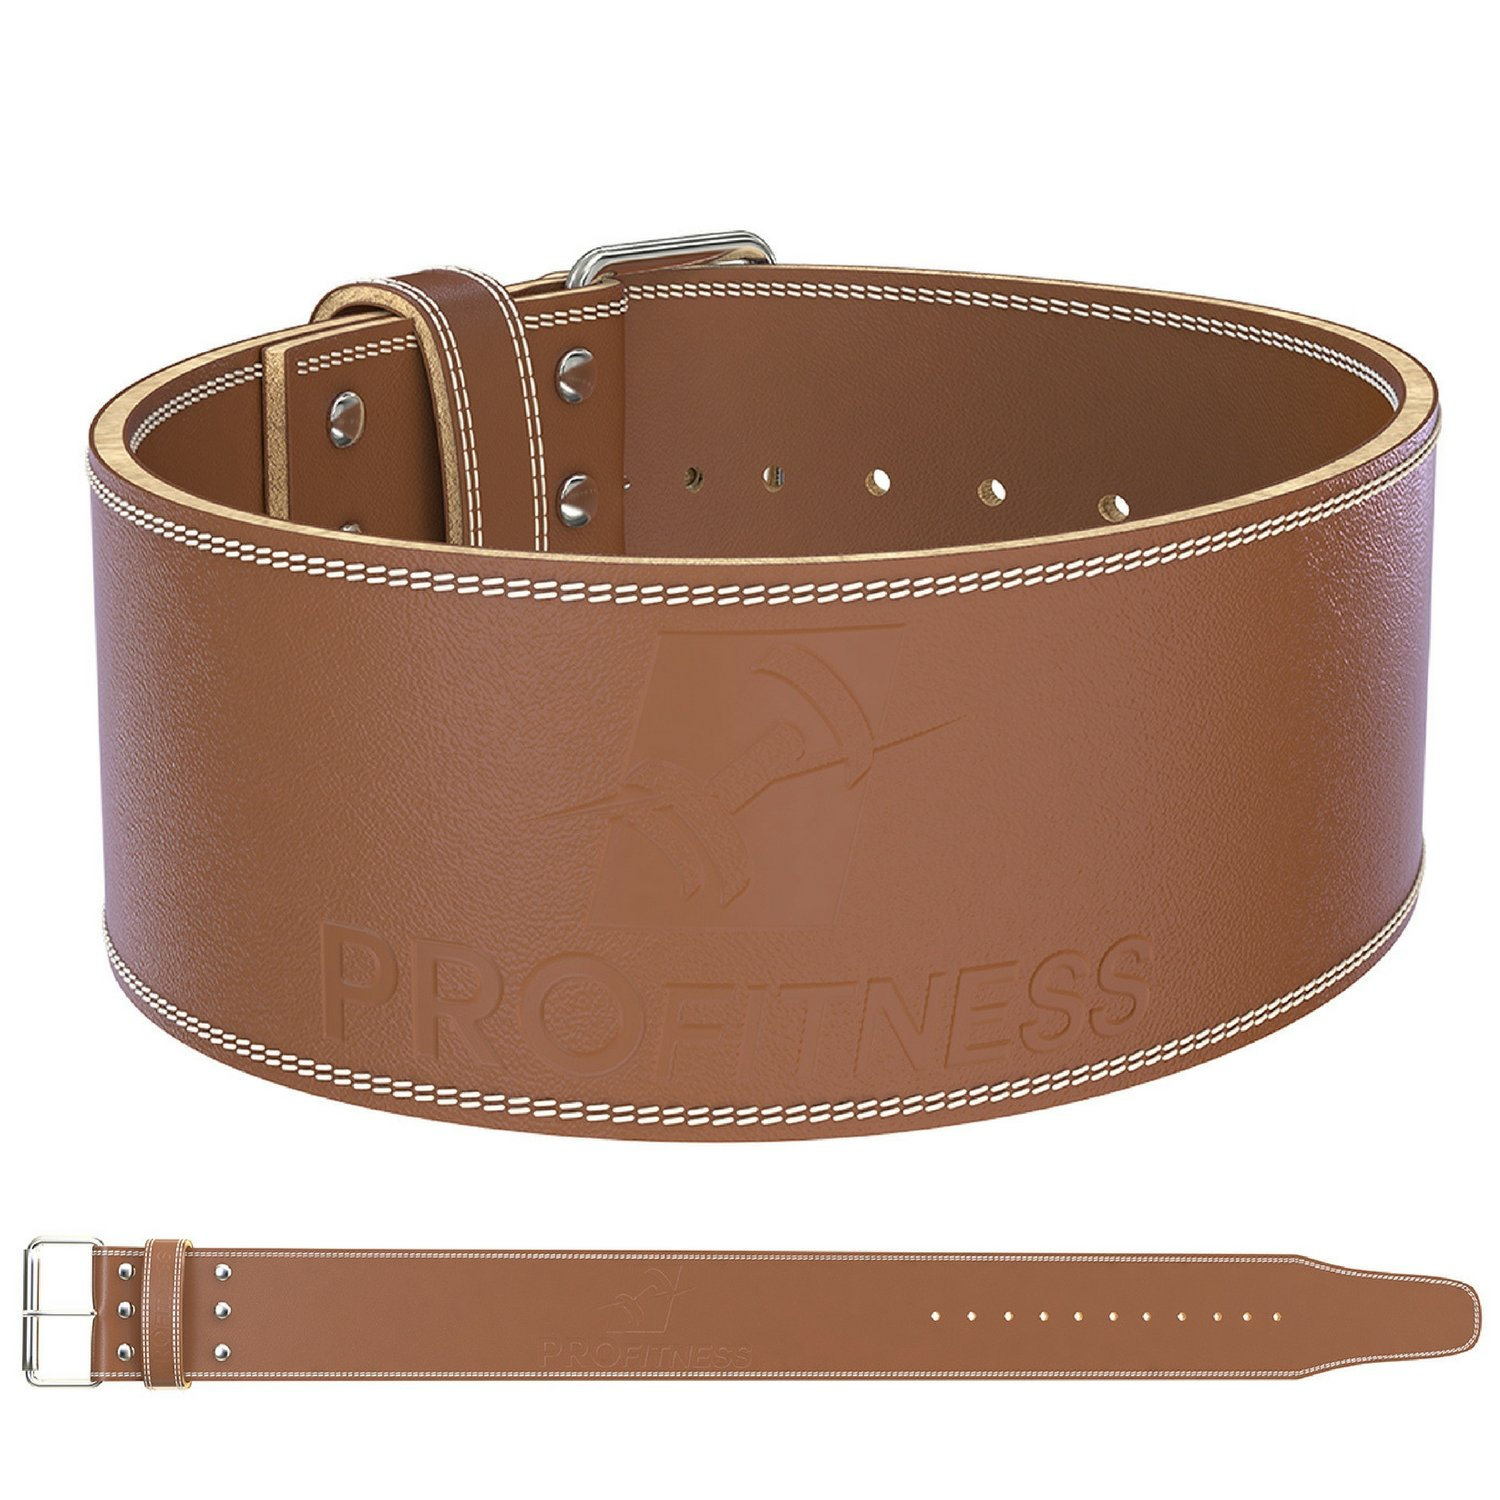 ProFitness Genuine Leather Workout Belt (10MM Wide) - Proper Weightlifting Form - Lower Back and Lumbar Support for CROS Exercises, Powerlifting Workouts, Deadlifts (Small, Classic Tan)